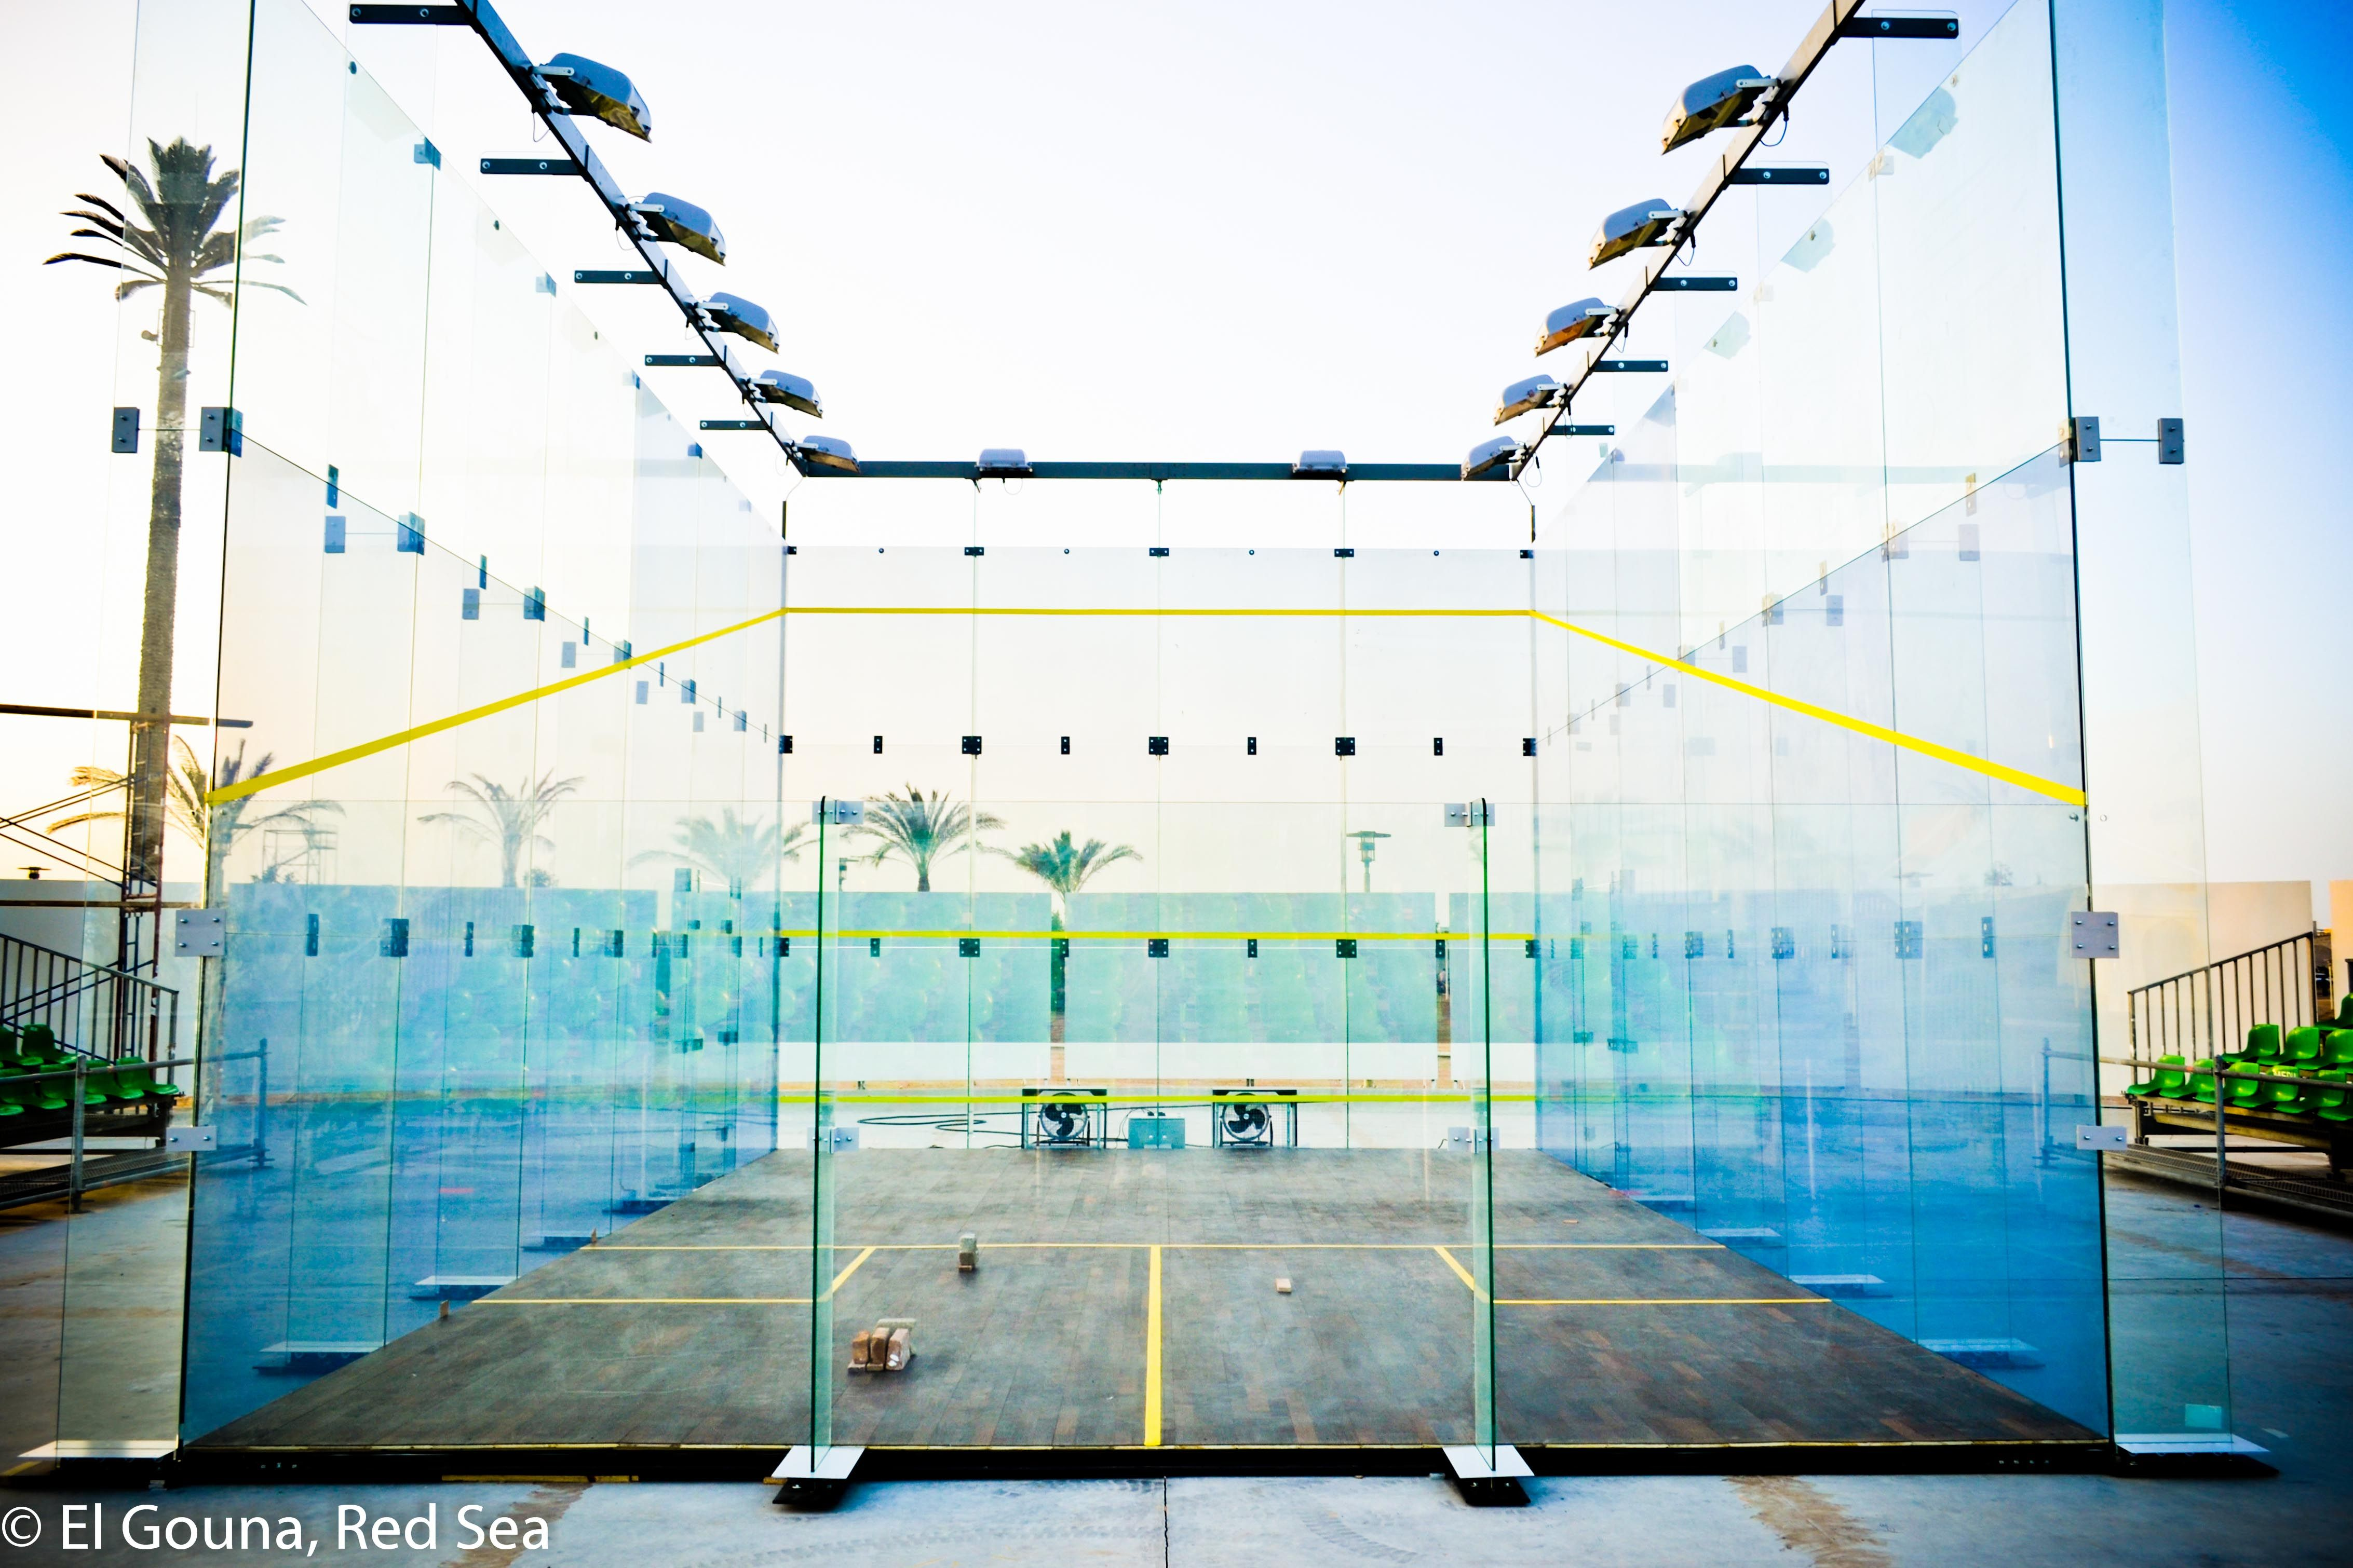 World S Most High Tech Glass Court For The El Gouna Int L Squash Open 2012 Squash Game Indoor Basketball Court Indoor Basketball